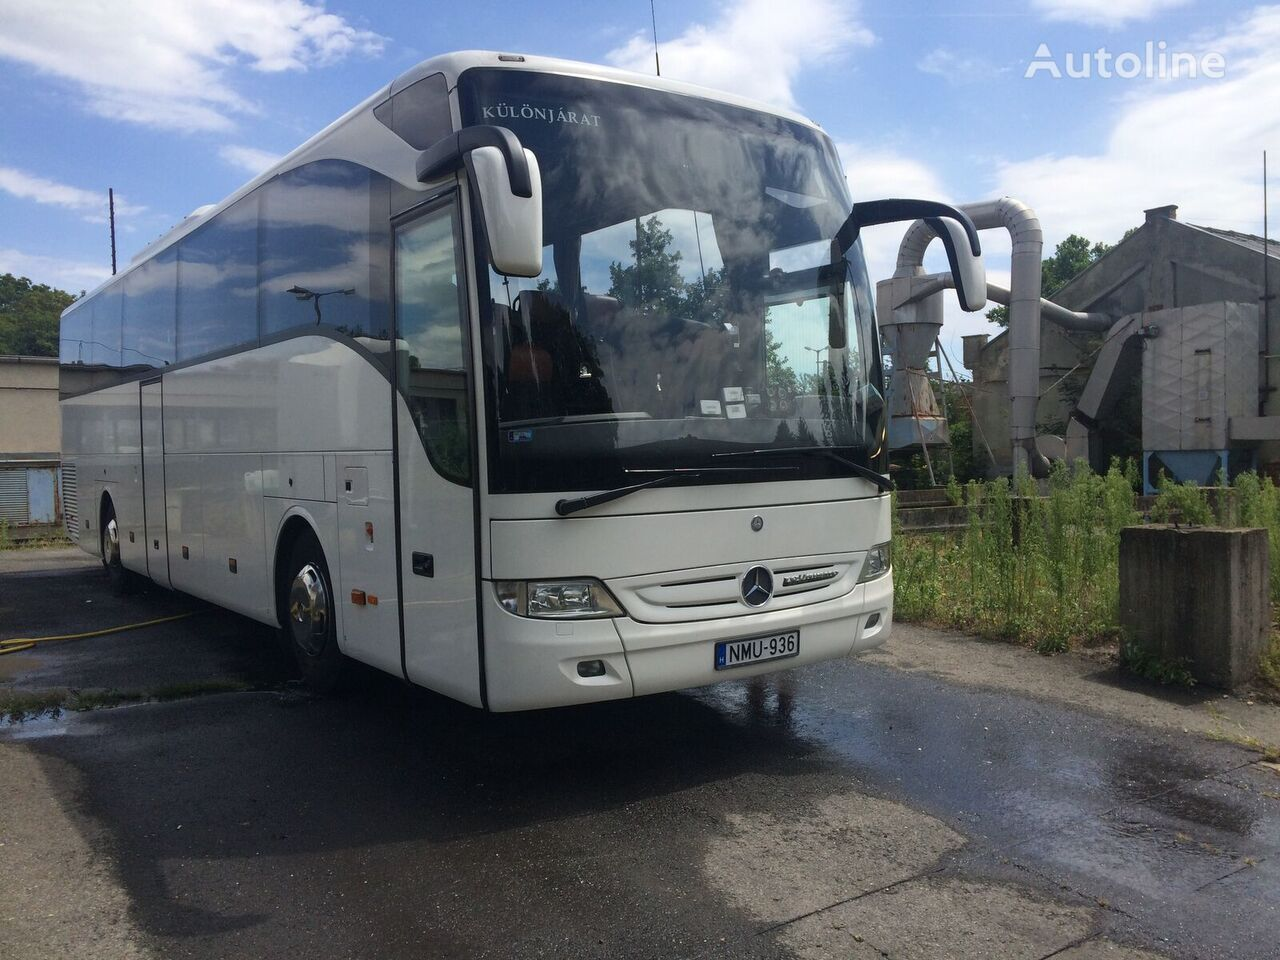 MERCEDES-BENZ Tourismo 15 RHD coach bus